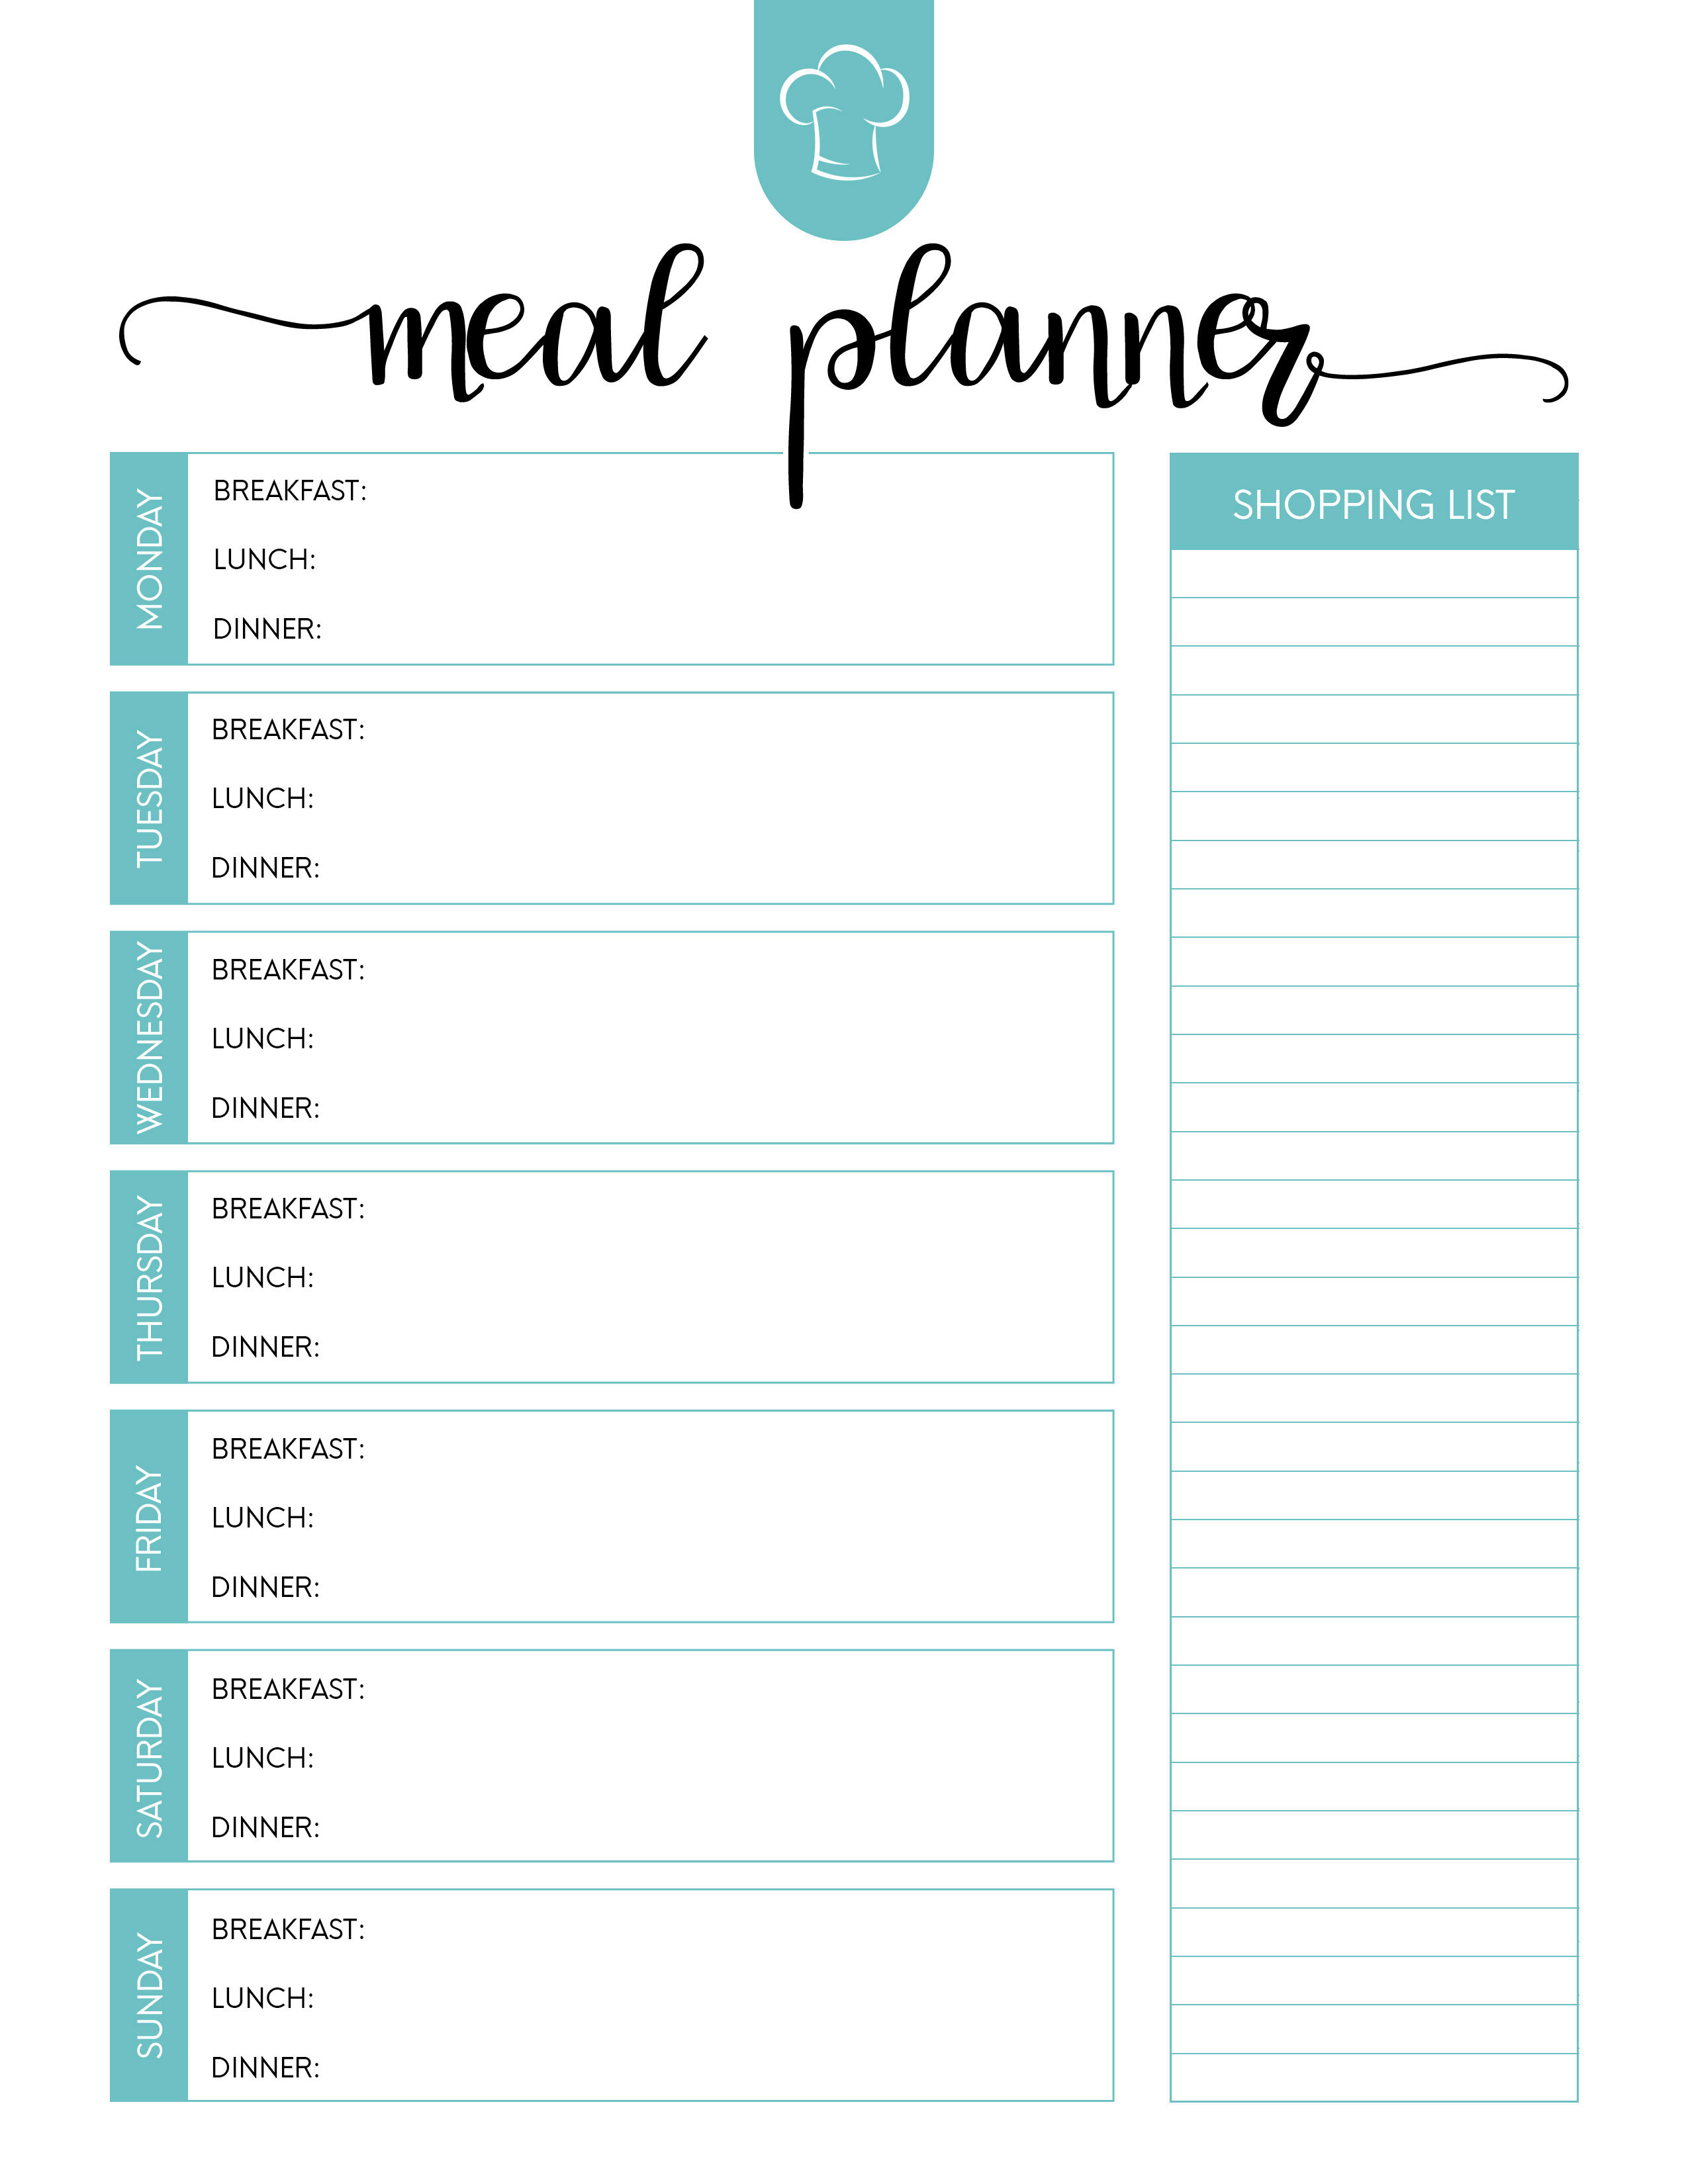 Free Printable Meal Planner Set - The Cottage Market - Free Printable Weekly Meal Planner